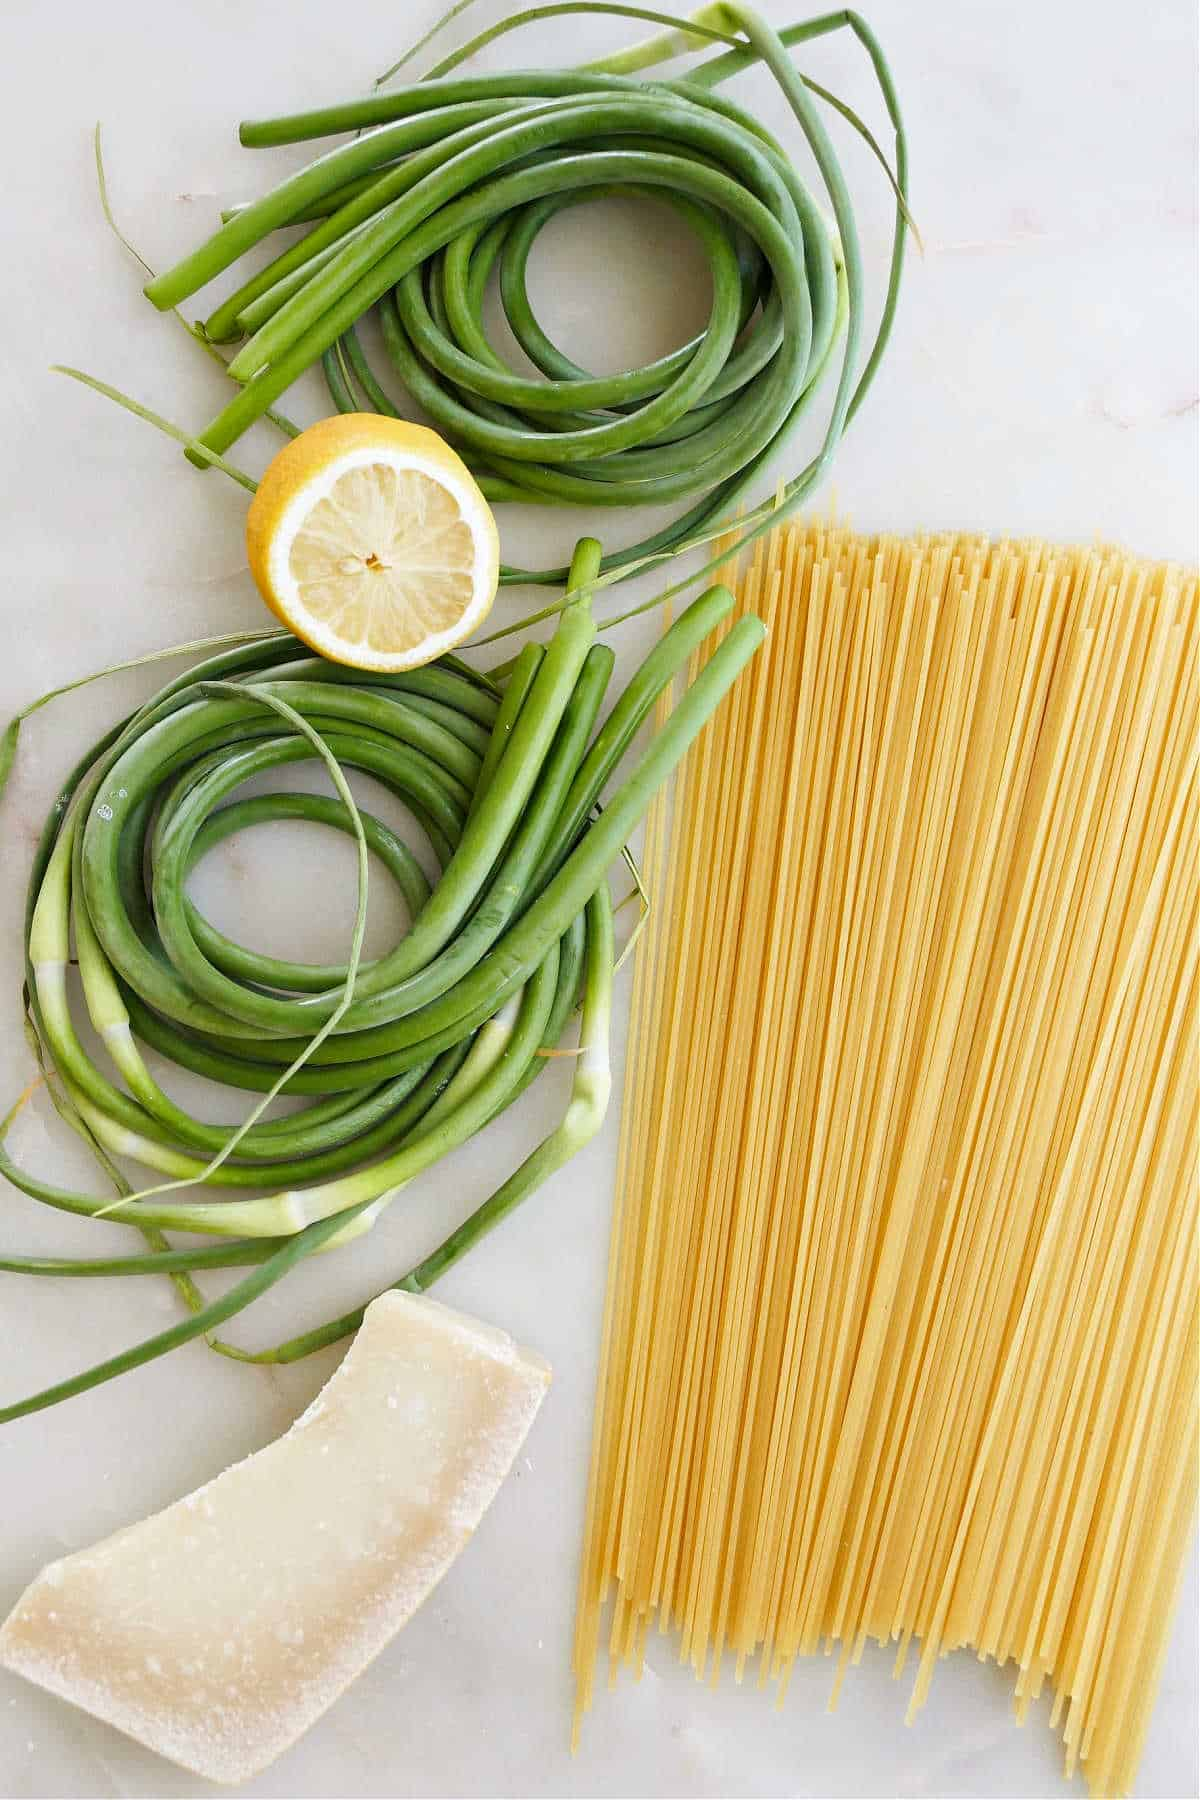 garlic scapes, lemon, spaghetti, and parmesan spread out next to each other on a counter